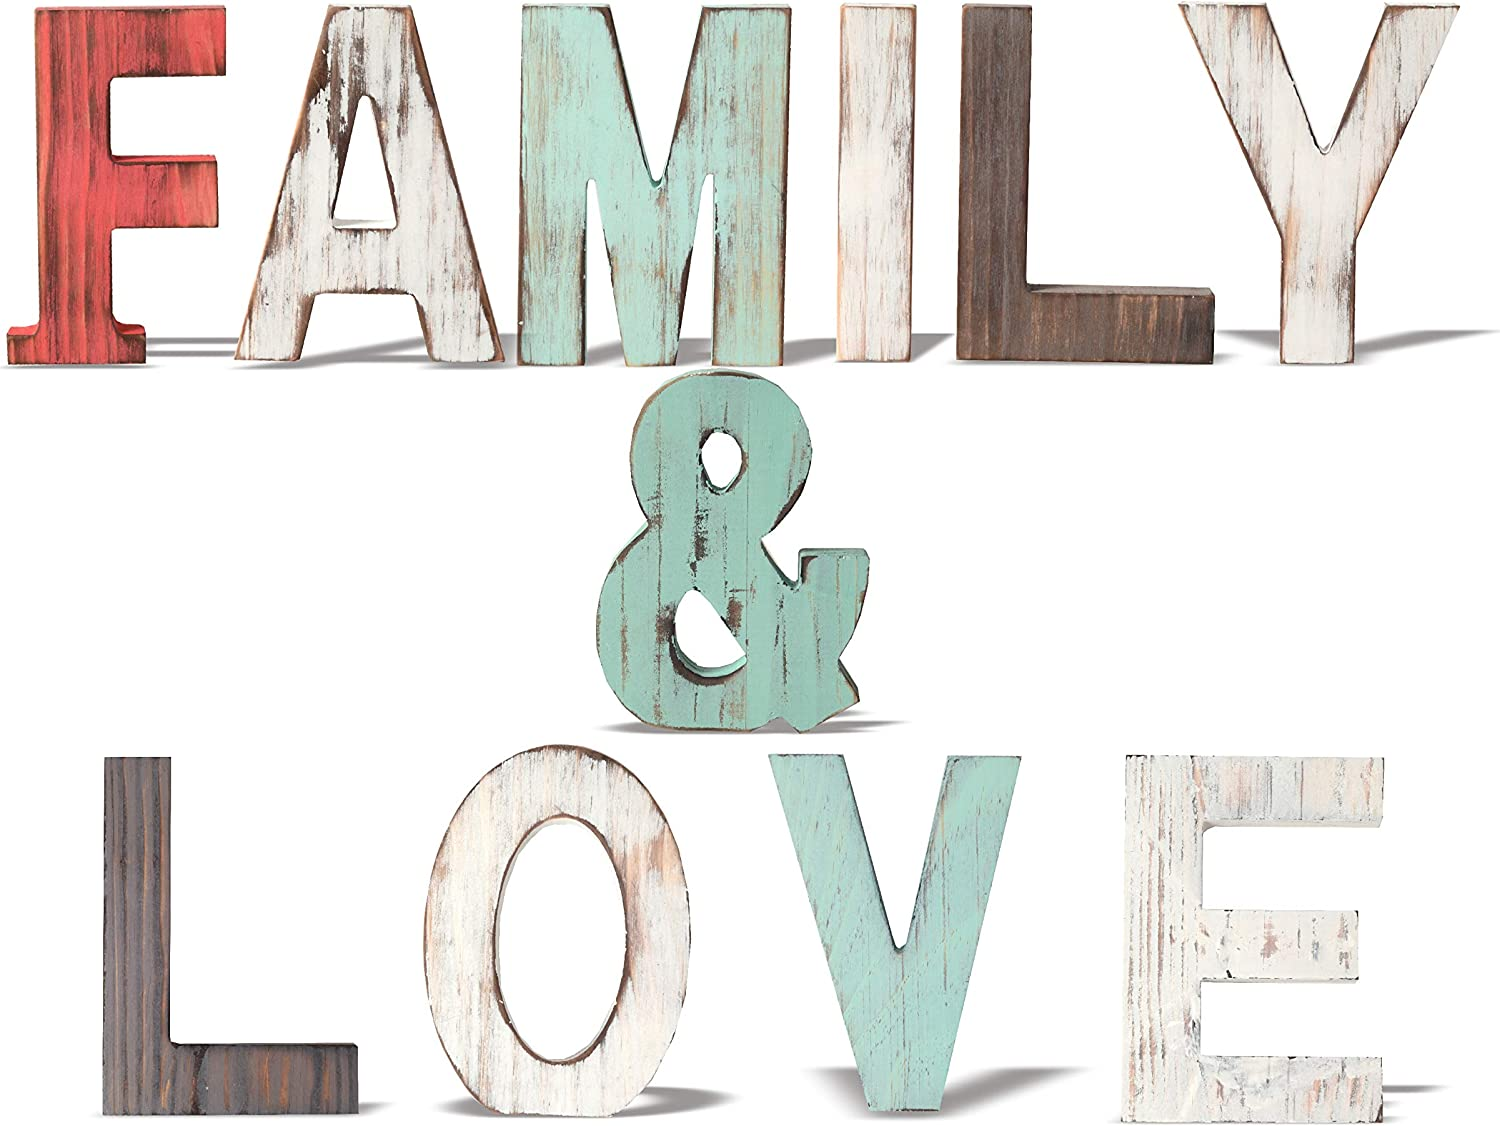 MEANT2TOBE Rustic Wood Family & Love Signs Home Décor |Freestanding Wooden Letters Cutouts for Home Décor|Multi-Color Wooden Signs |Decorative Word Signs|Multicolor Table Decor Centerpiece